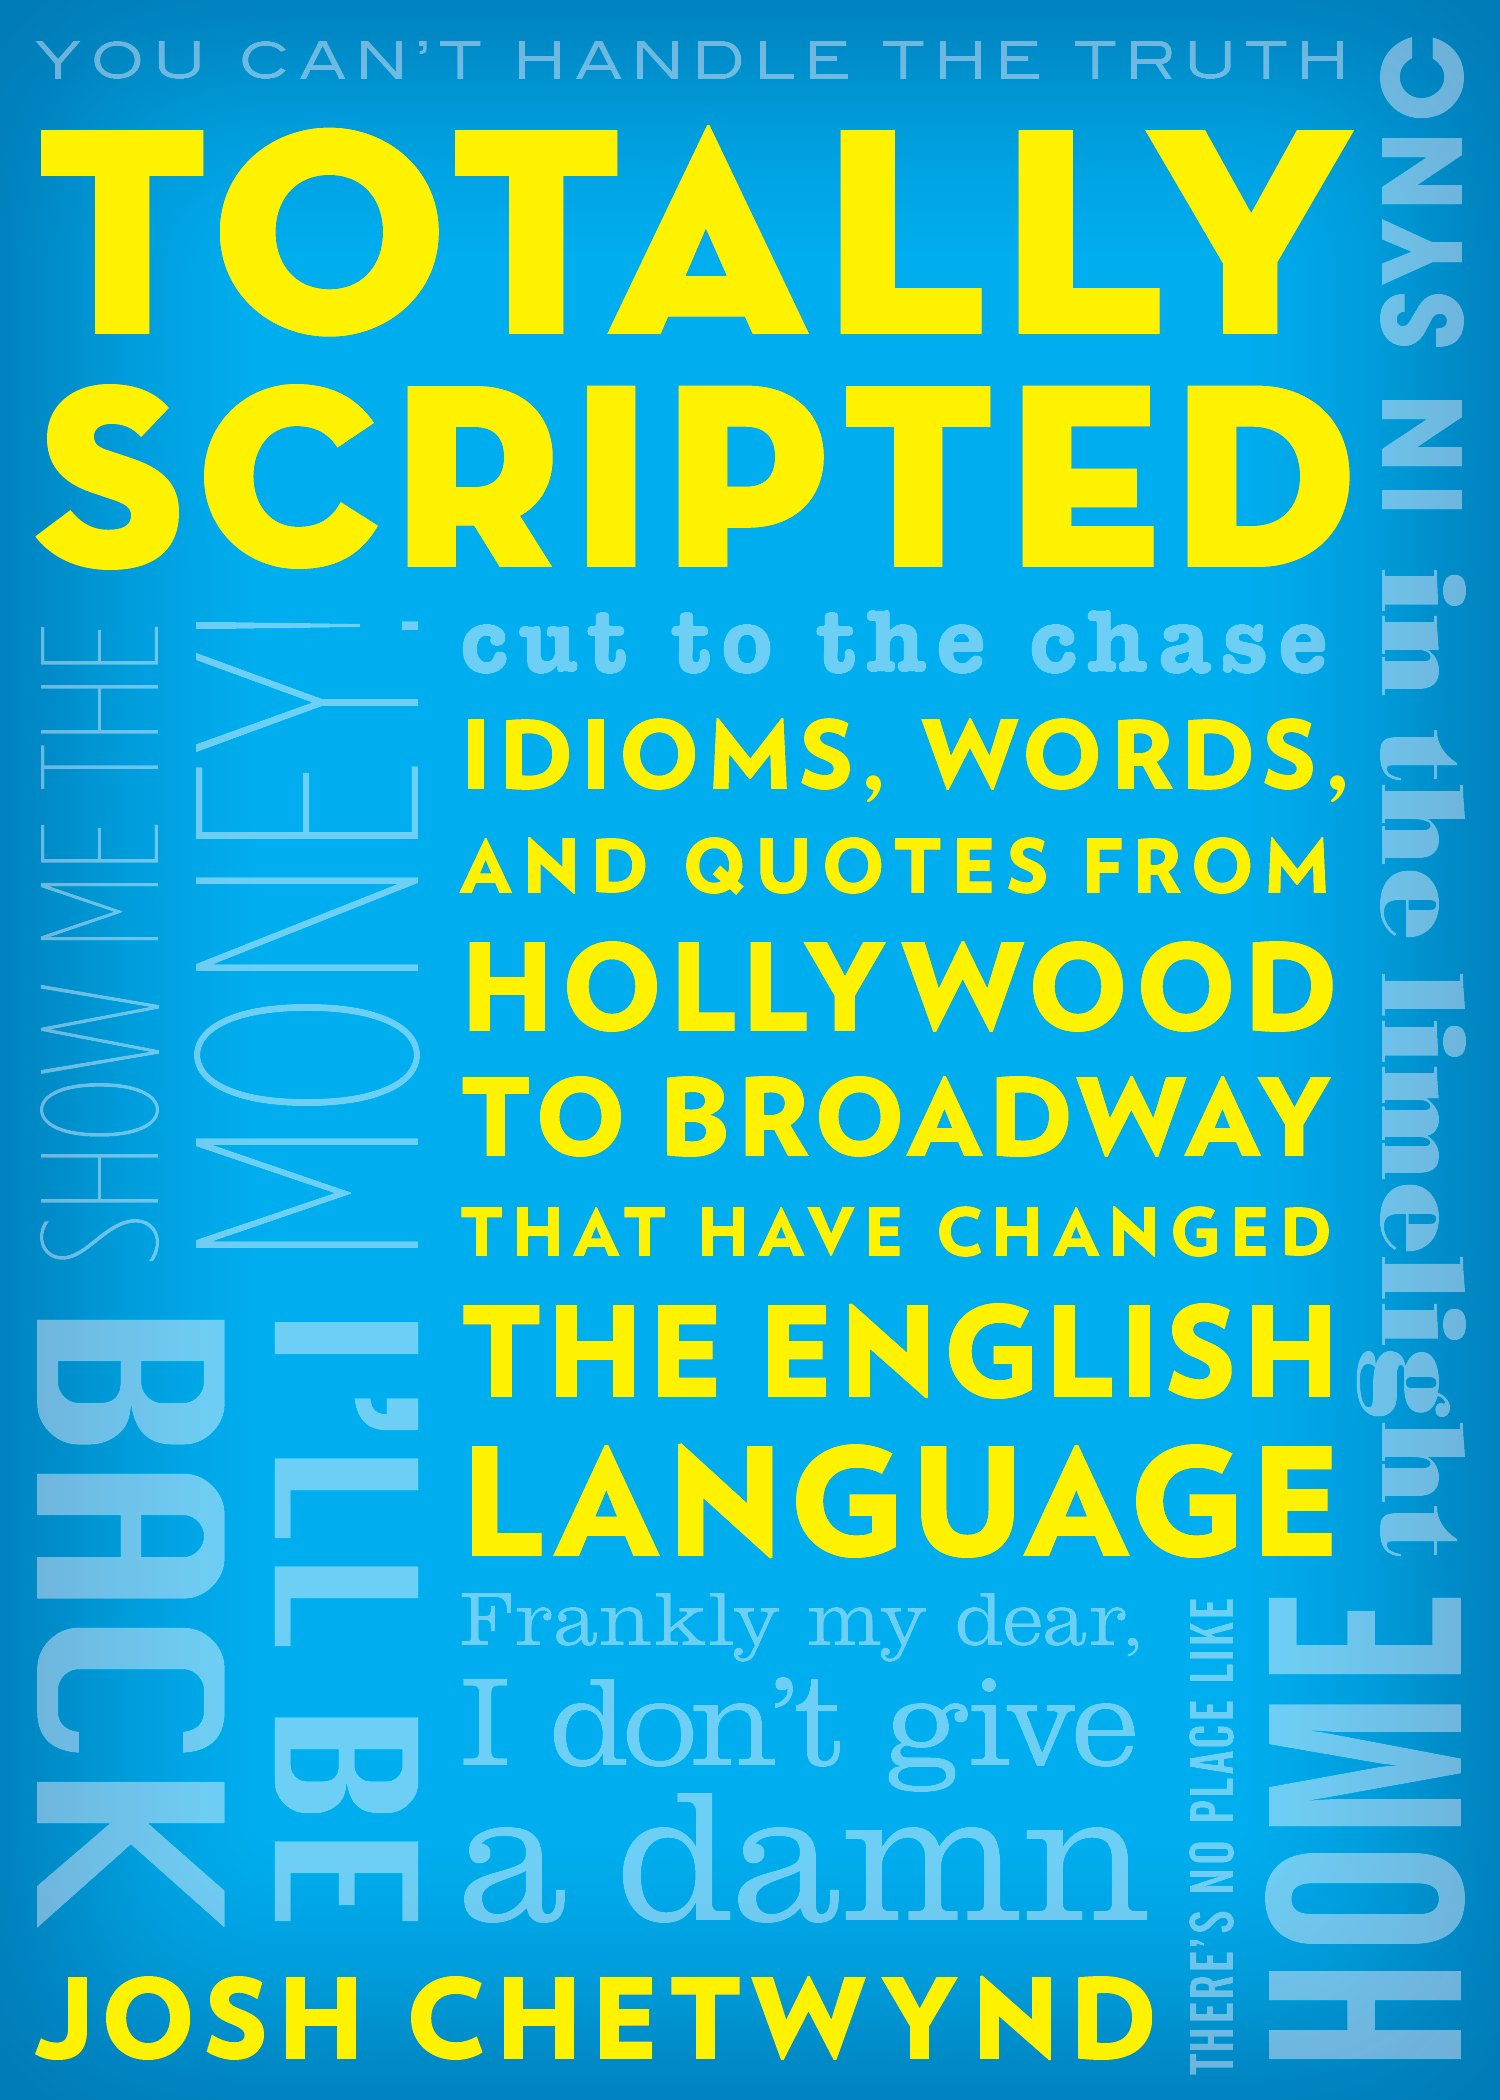 Totally scripted idioms words and quotes from hollywood to totally scripted idioms words and quotes from hollywood to broadway that have changed the english language josh chetwynd 9781630762827 amazon fandeluxe Choice Image